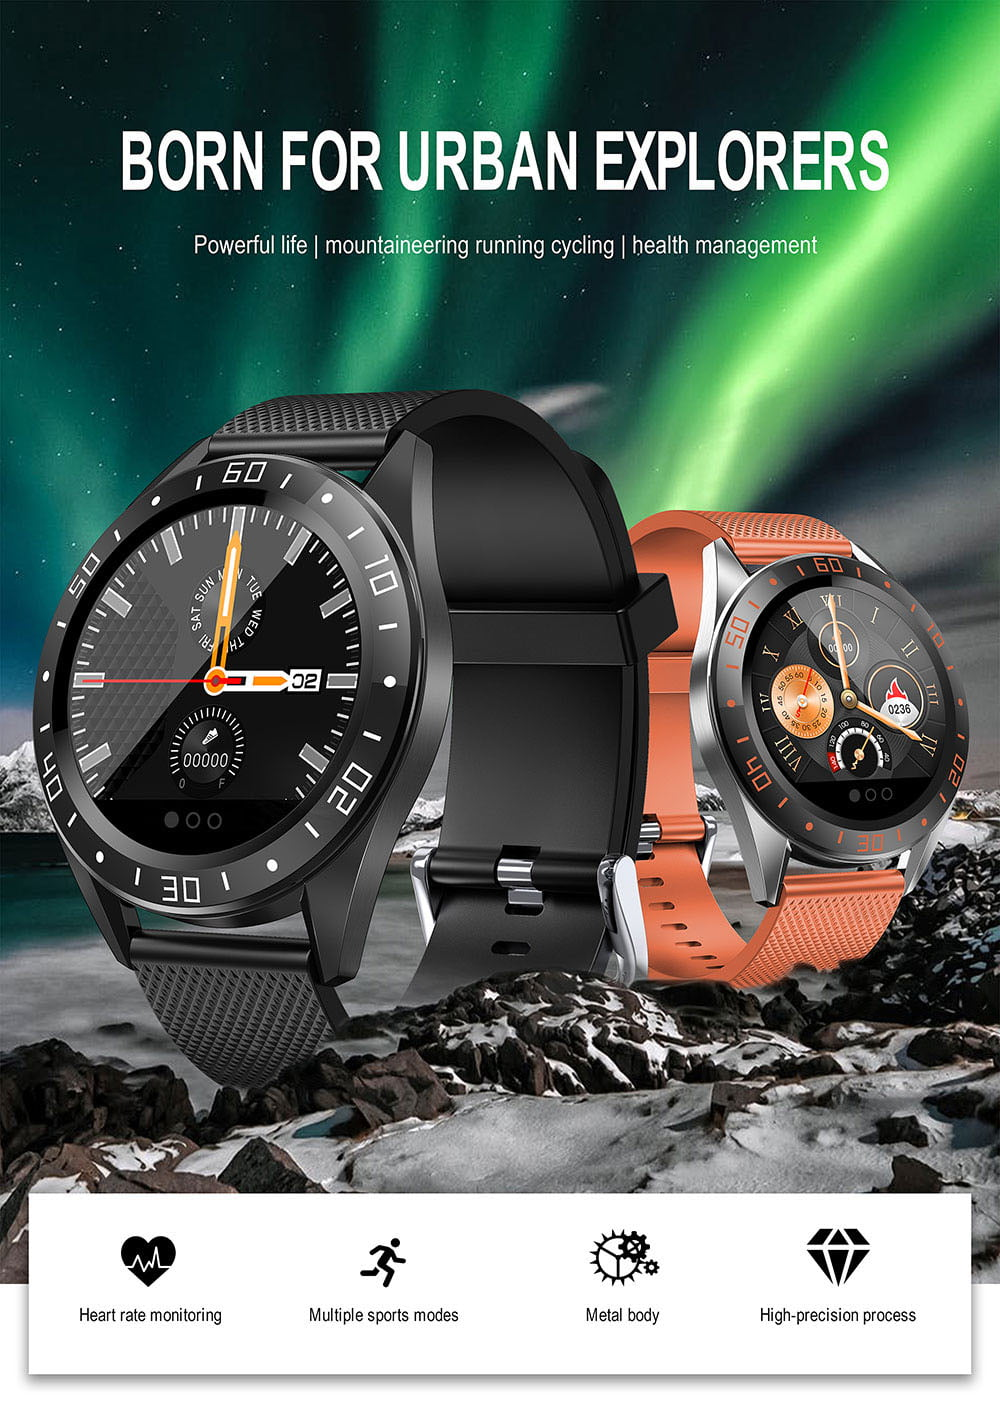 Bakeey smartwatch gt105 ecg health monitor thermometer temperature measurement (1)